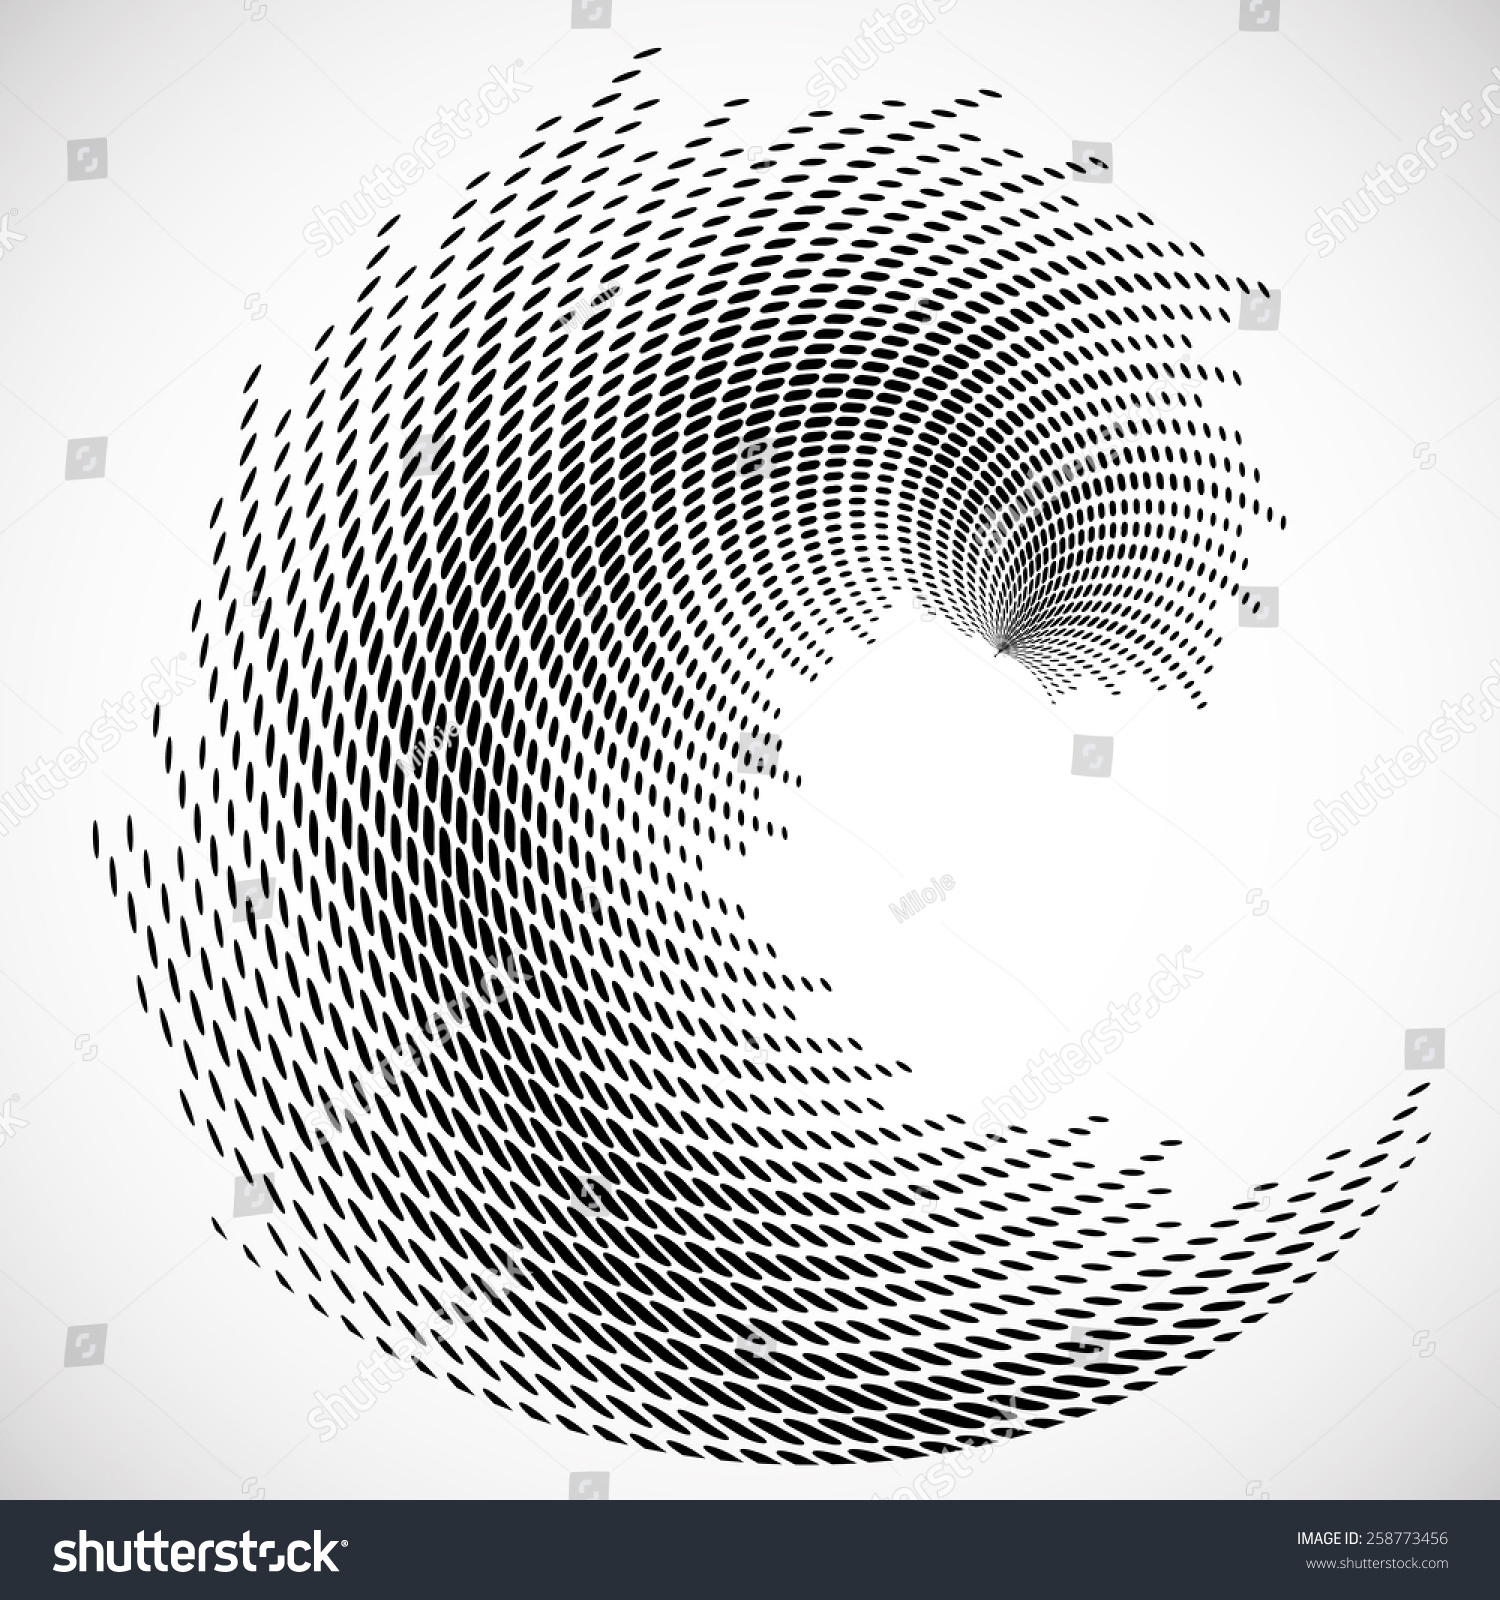 Line Art Vs Halftone : Halftone square vector equalizer abstract music stock